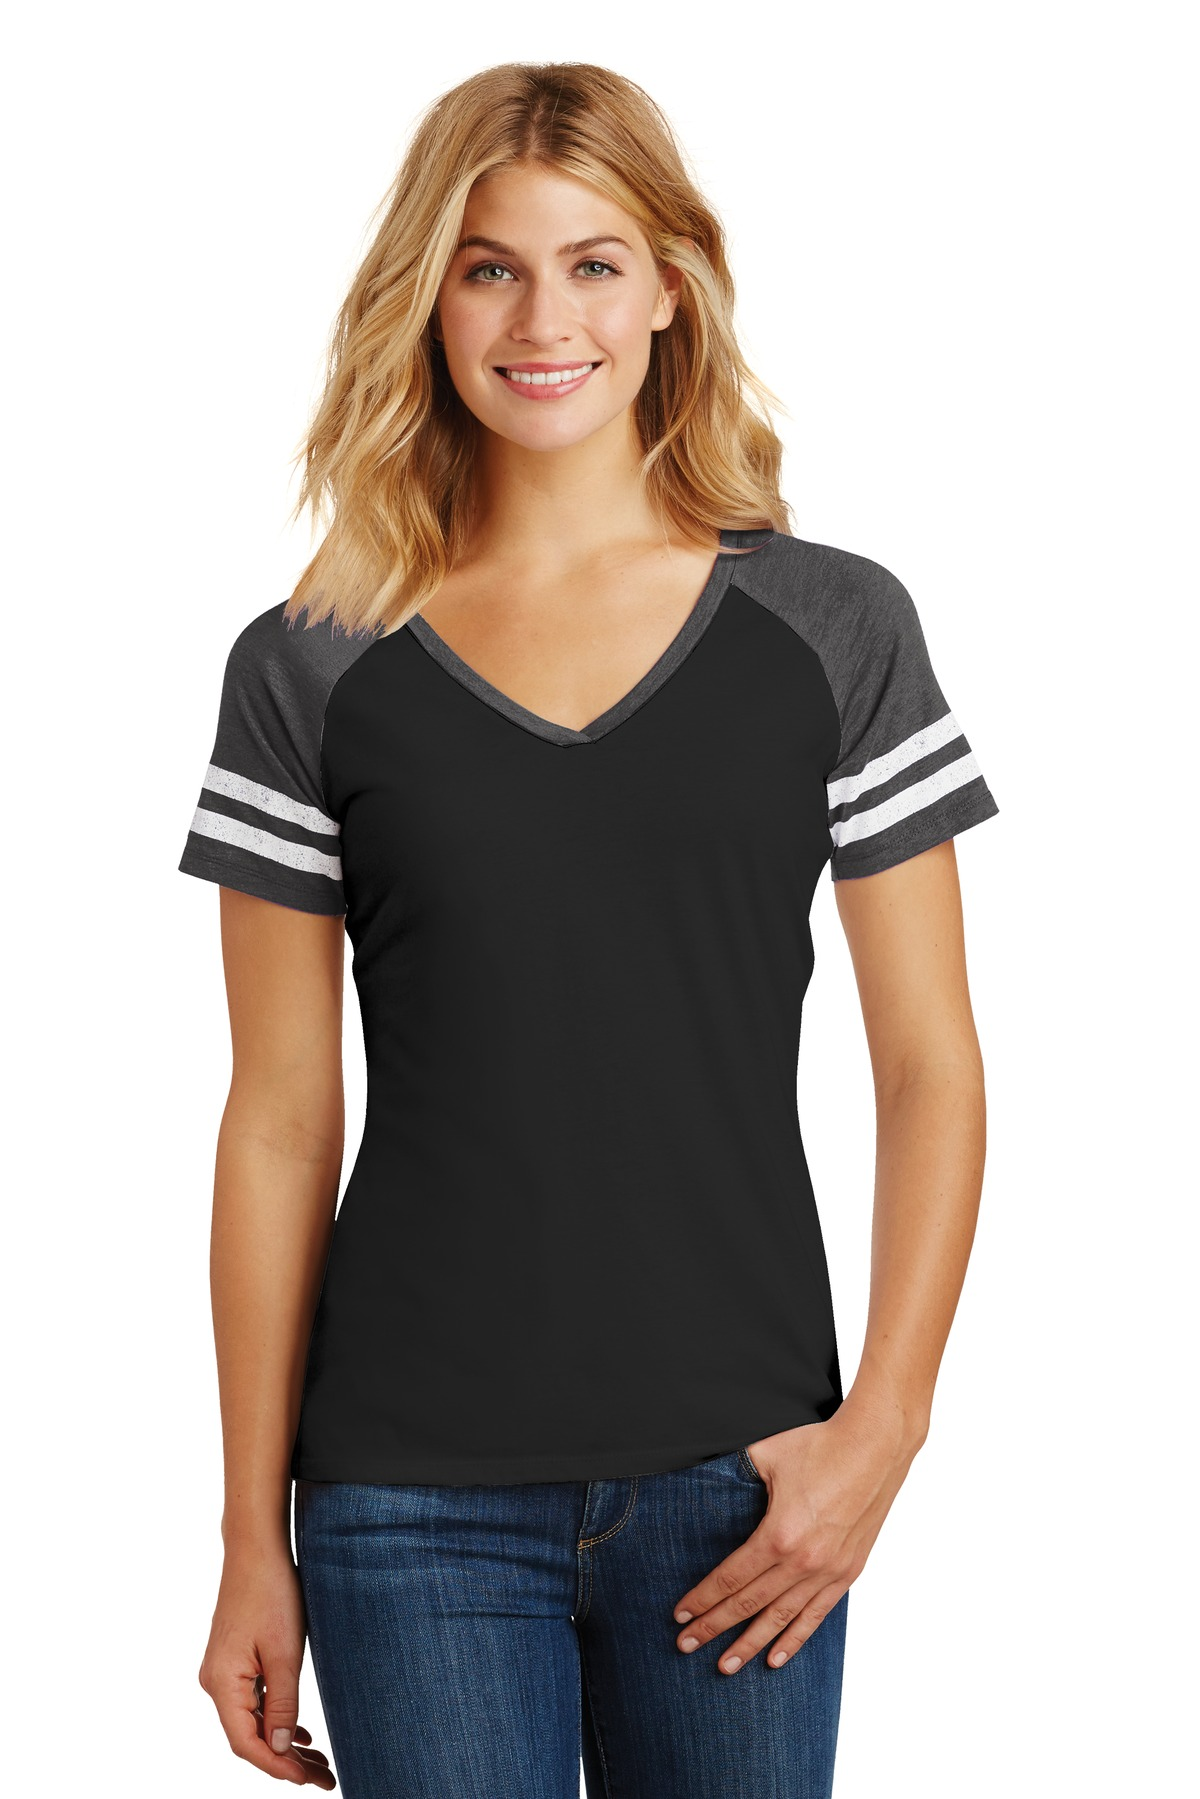 District  ®  Women's Game V-Neck Tee. DM476 - Black/ Heathered Charcoal